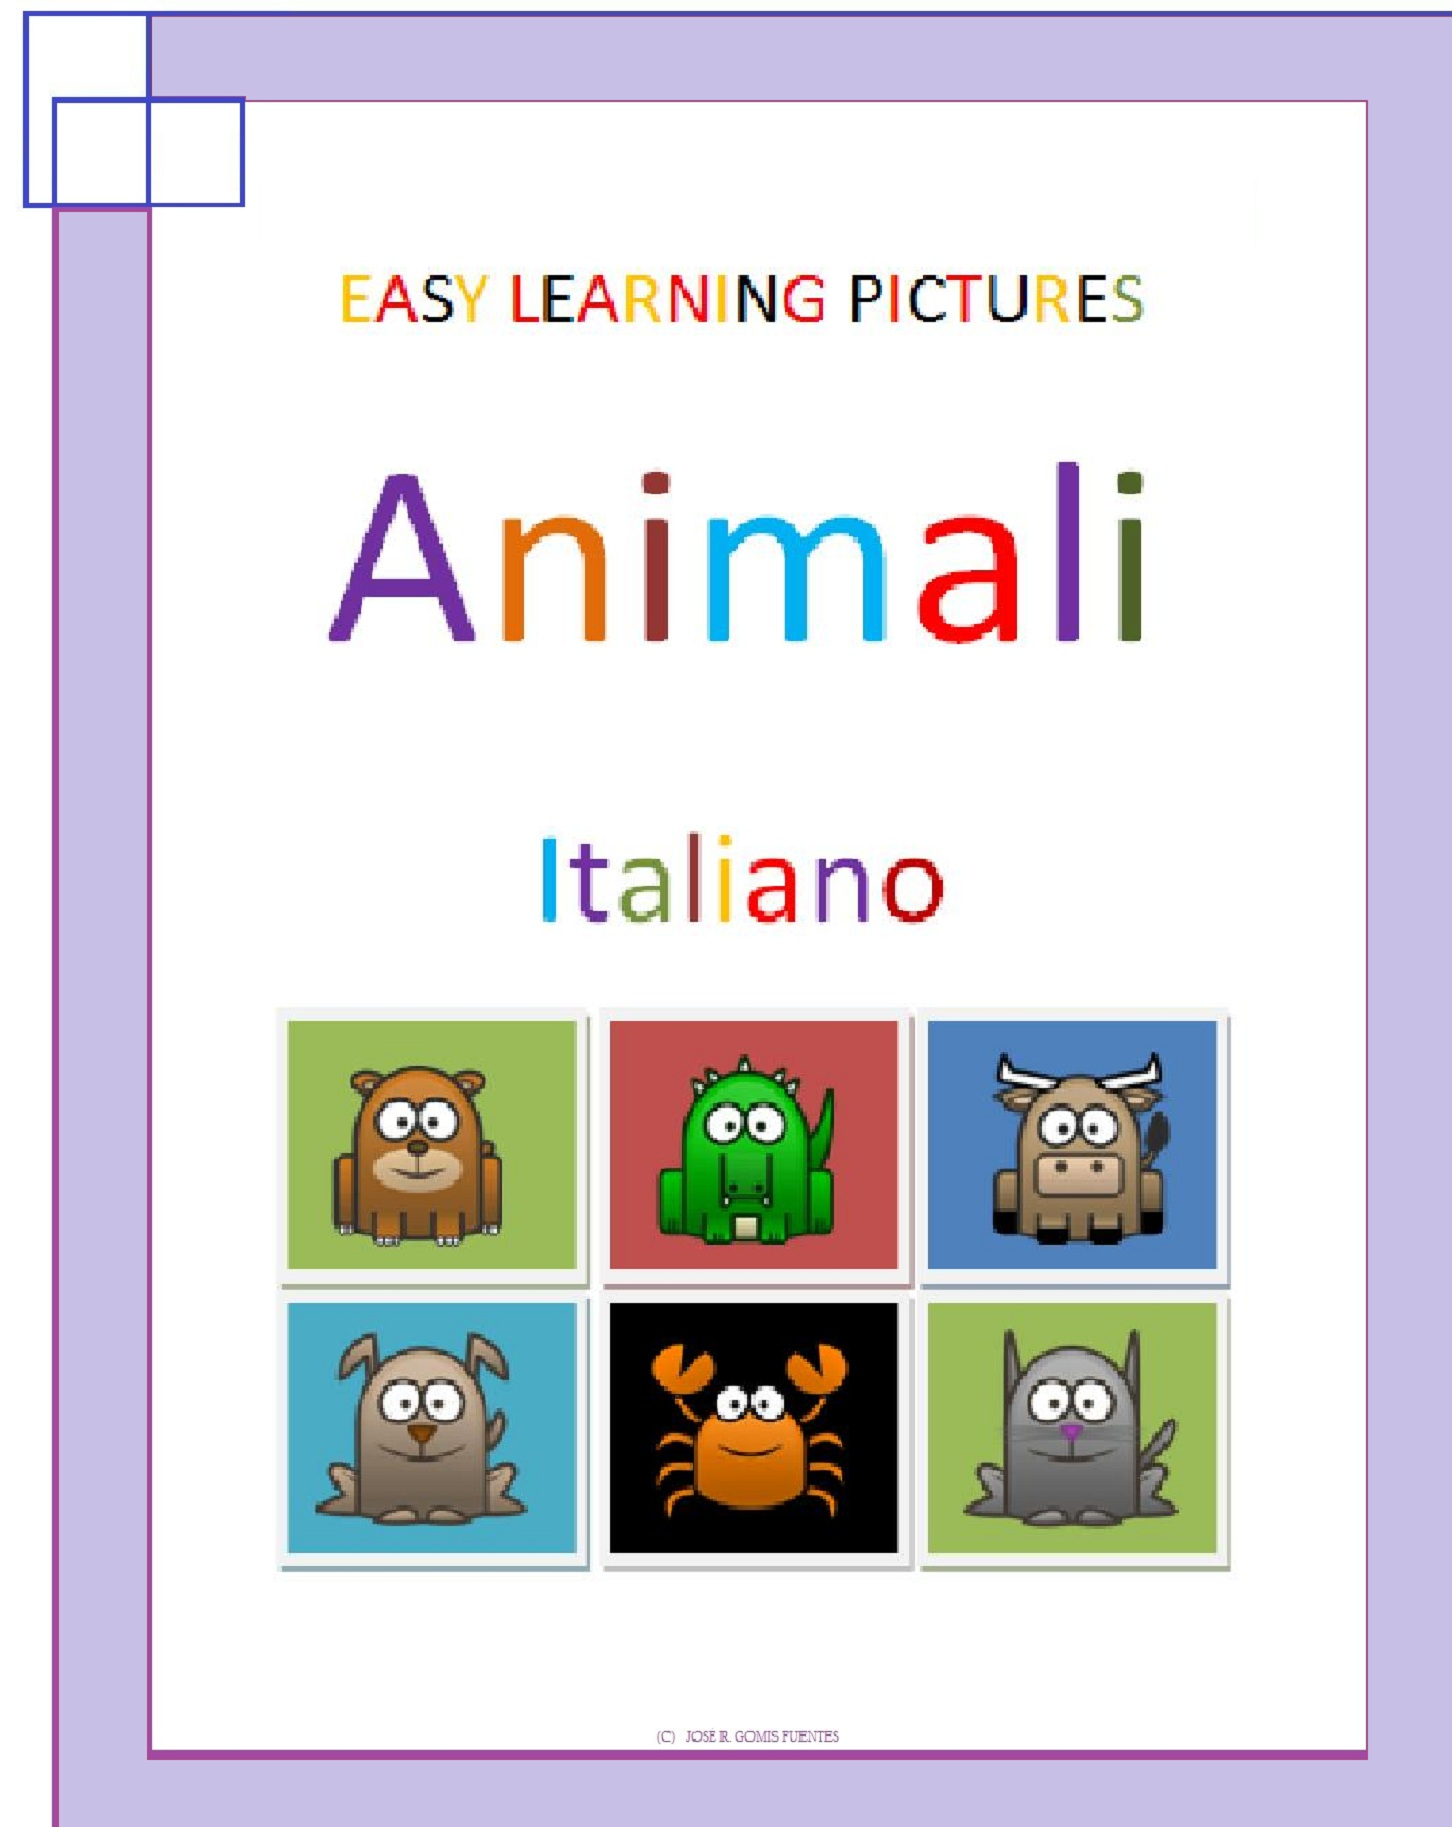 Jose Remigio Gomis Fuentes - Easy Learning Pictures. Animali.